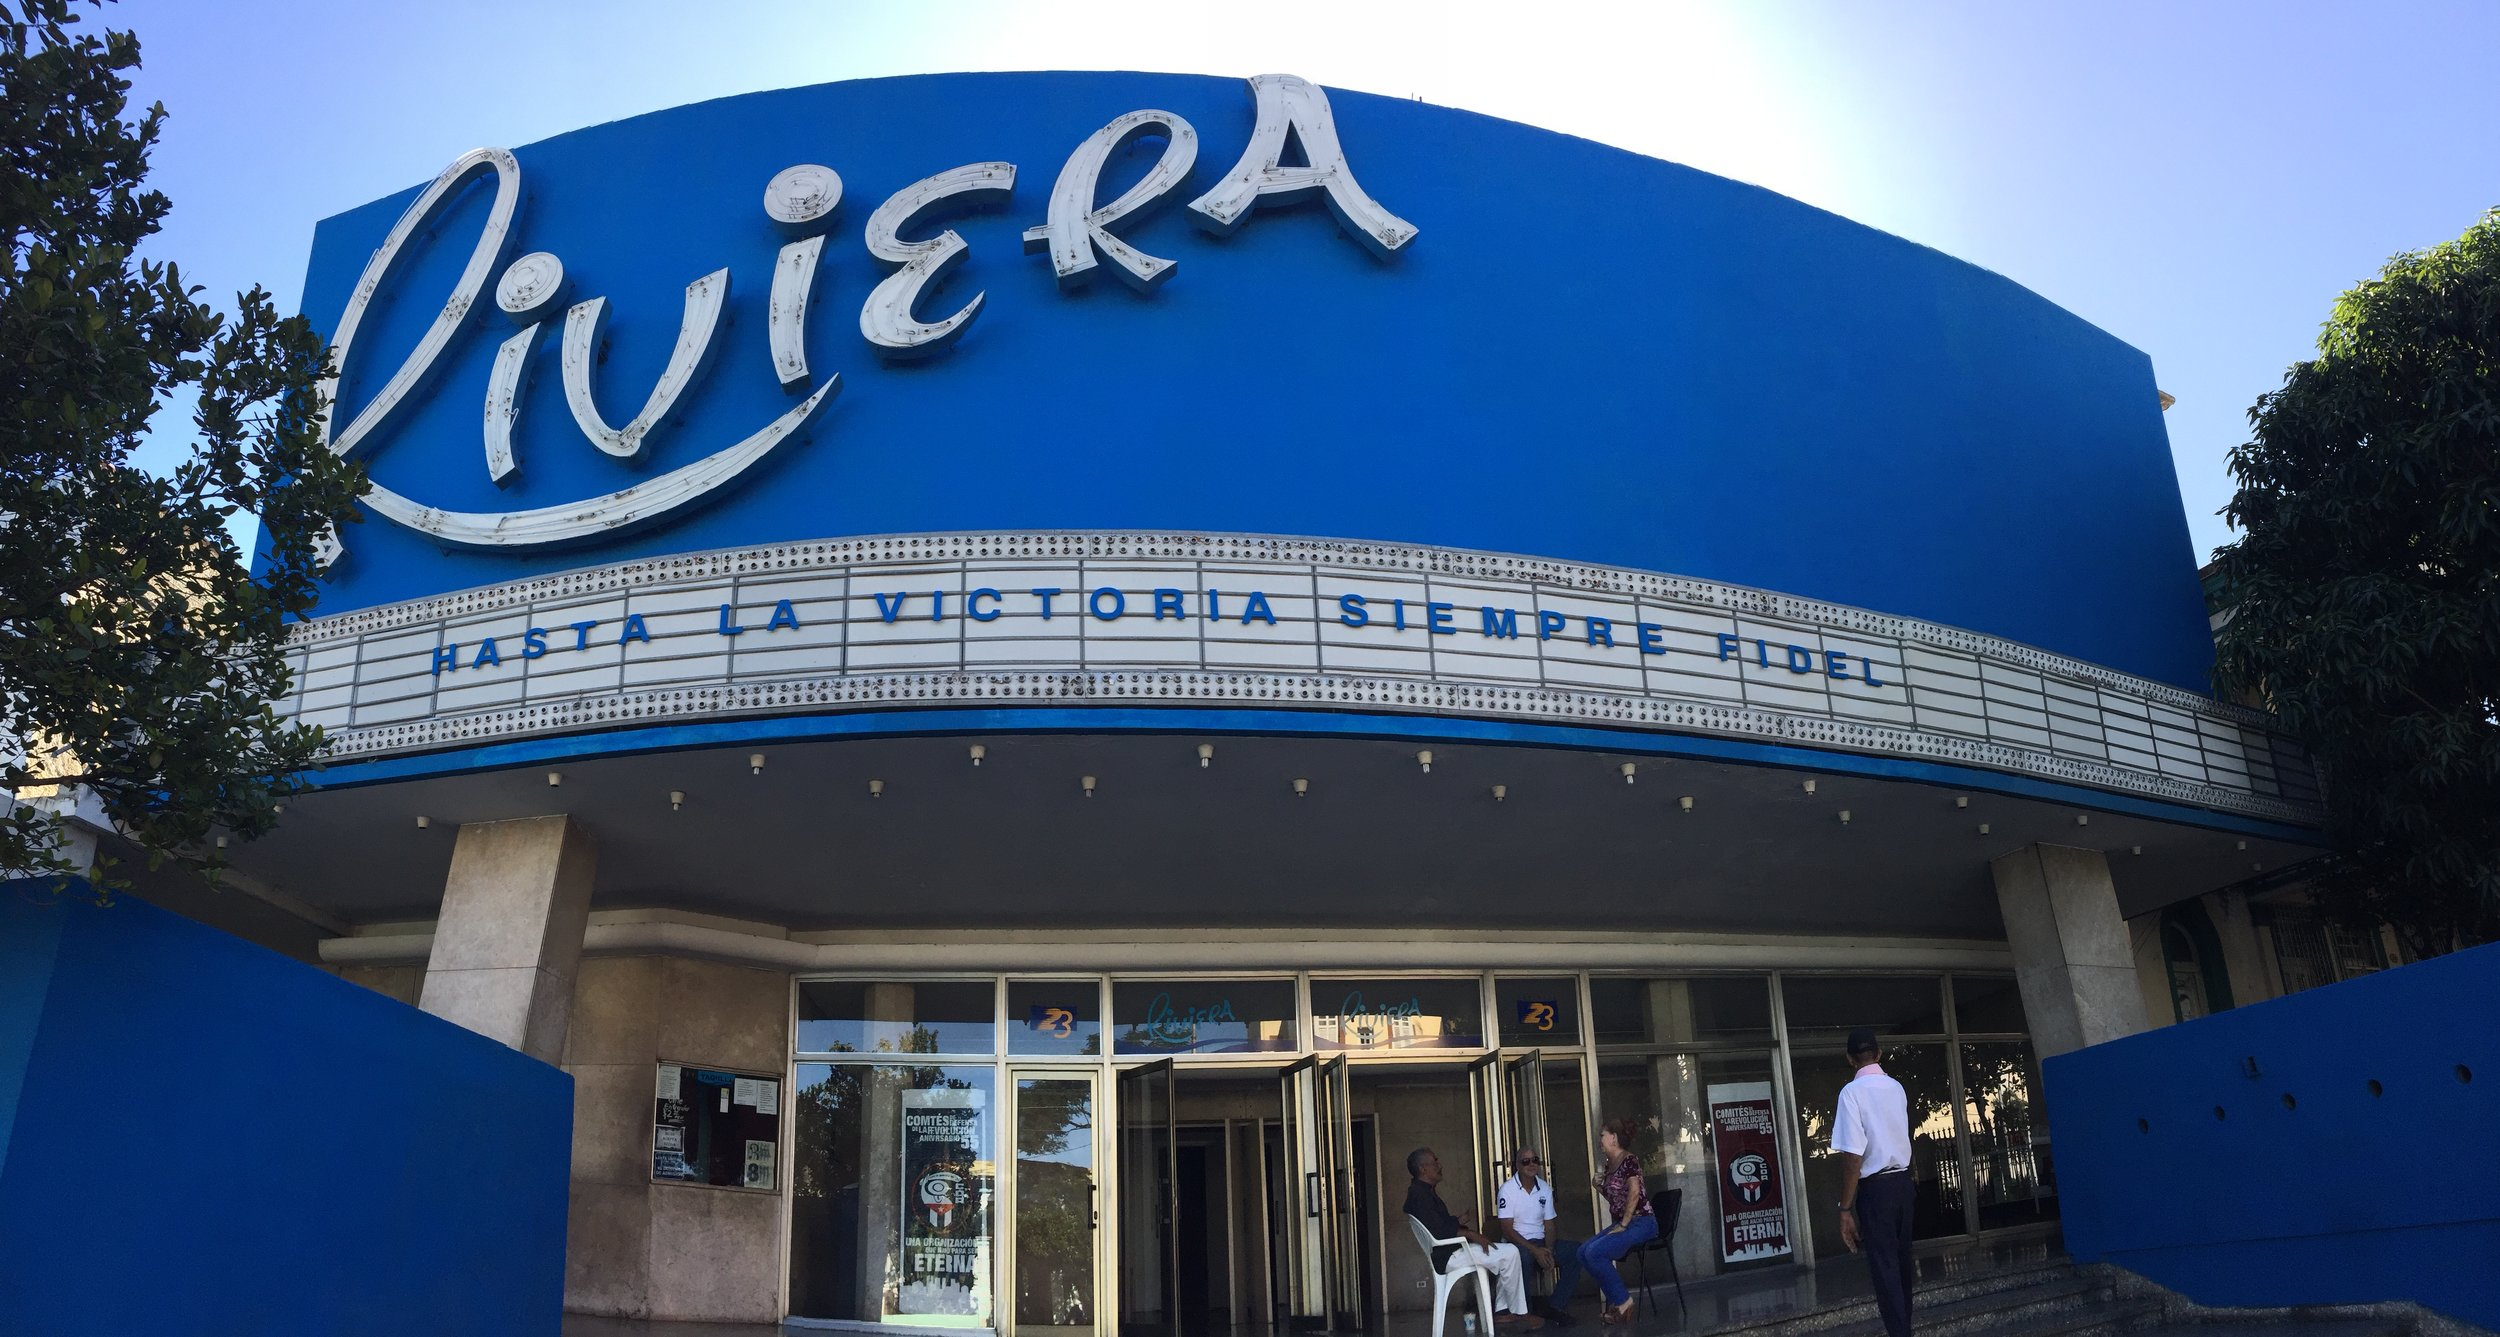 "Public tributes to Fidel were relatively subdued in Havana; aside from the turnout at the Plaza de la Revolución, the occasional storefront marquee was the only indication that Castro had died. At this cinema: ""Hasta la victoria siempre Fidel"" (To victory always, Fidel.)"